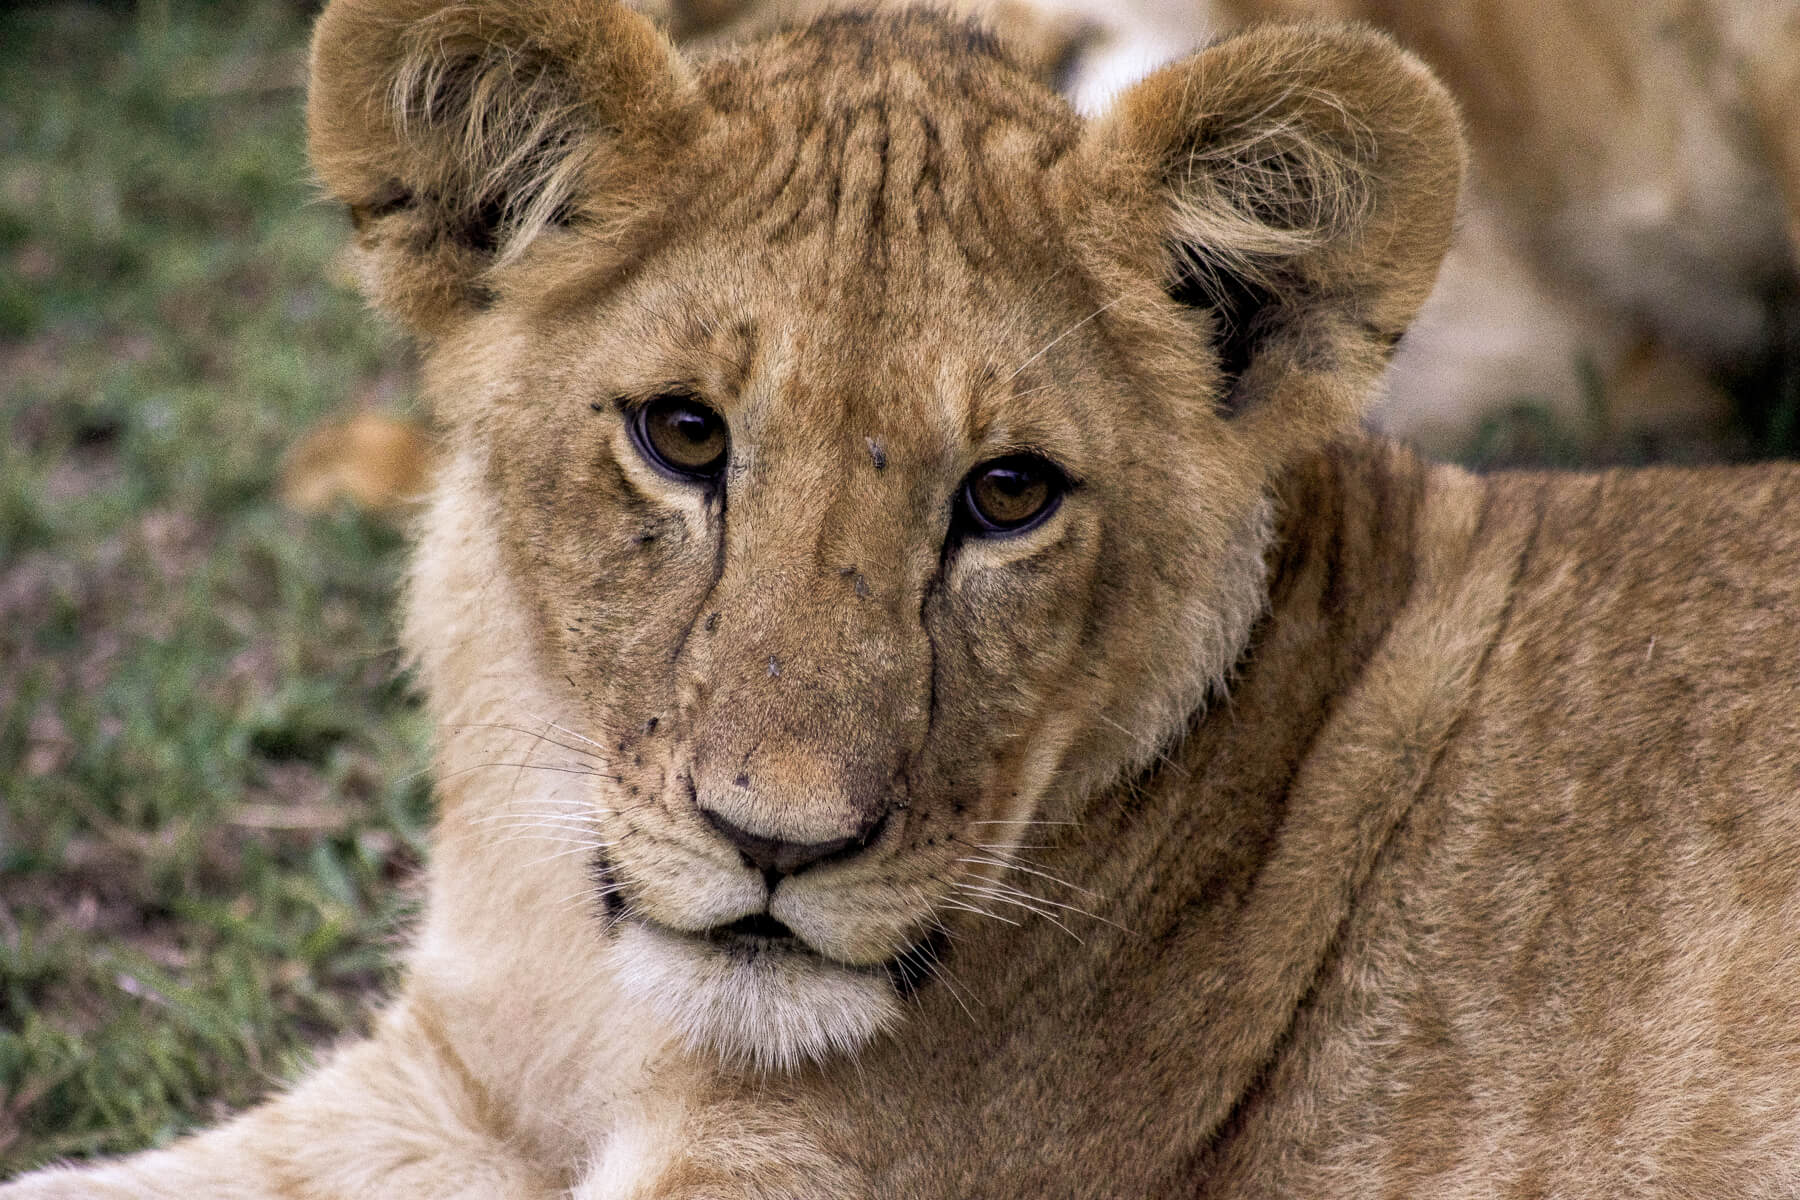 Close up of the face of a curious young lion cub - Kenya wildlife